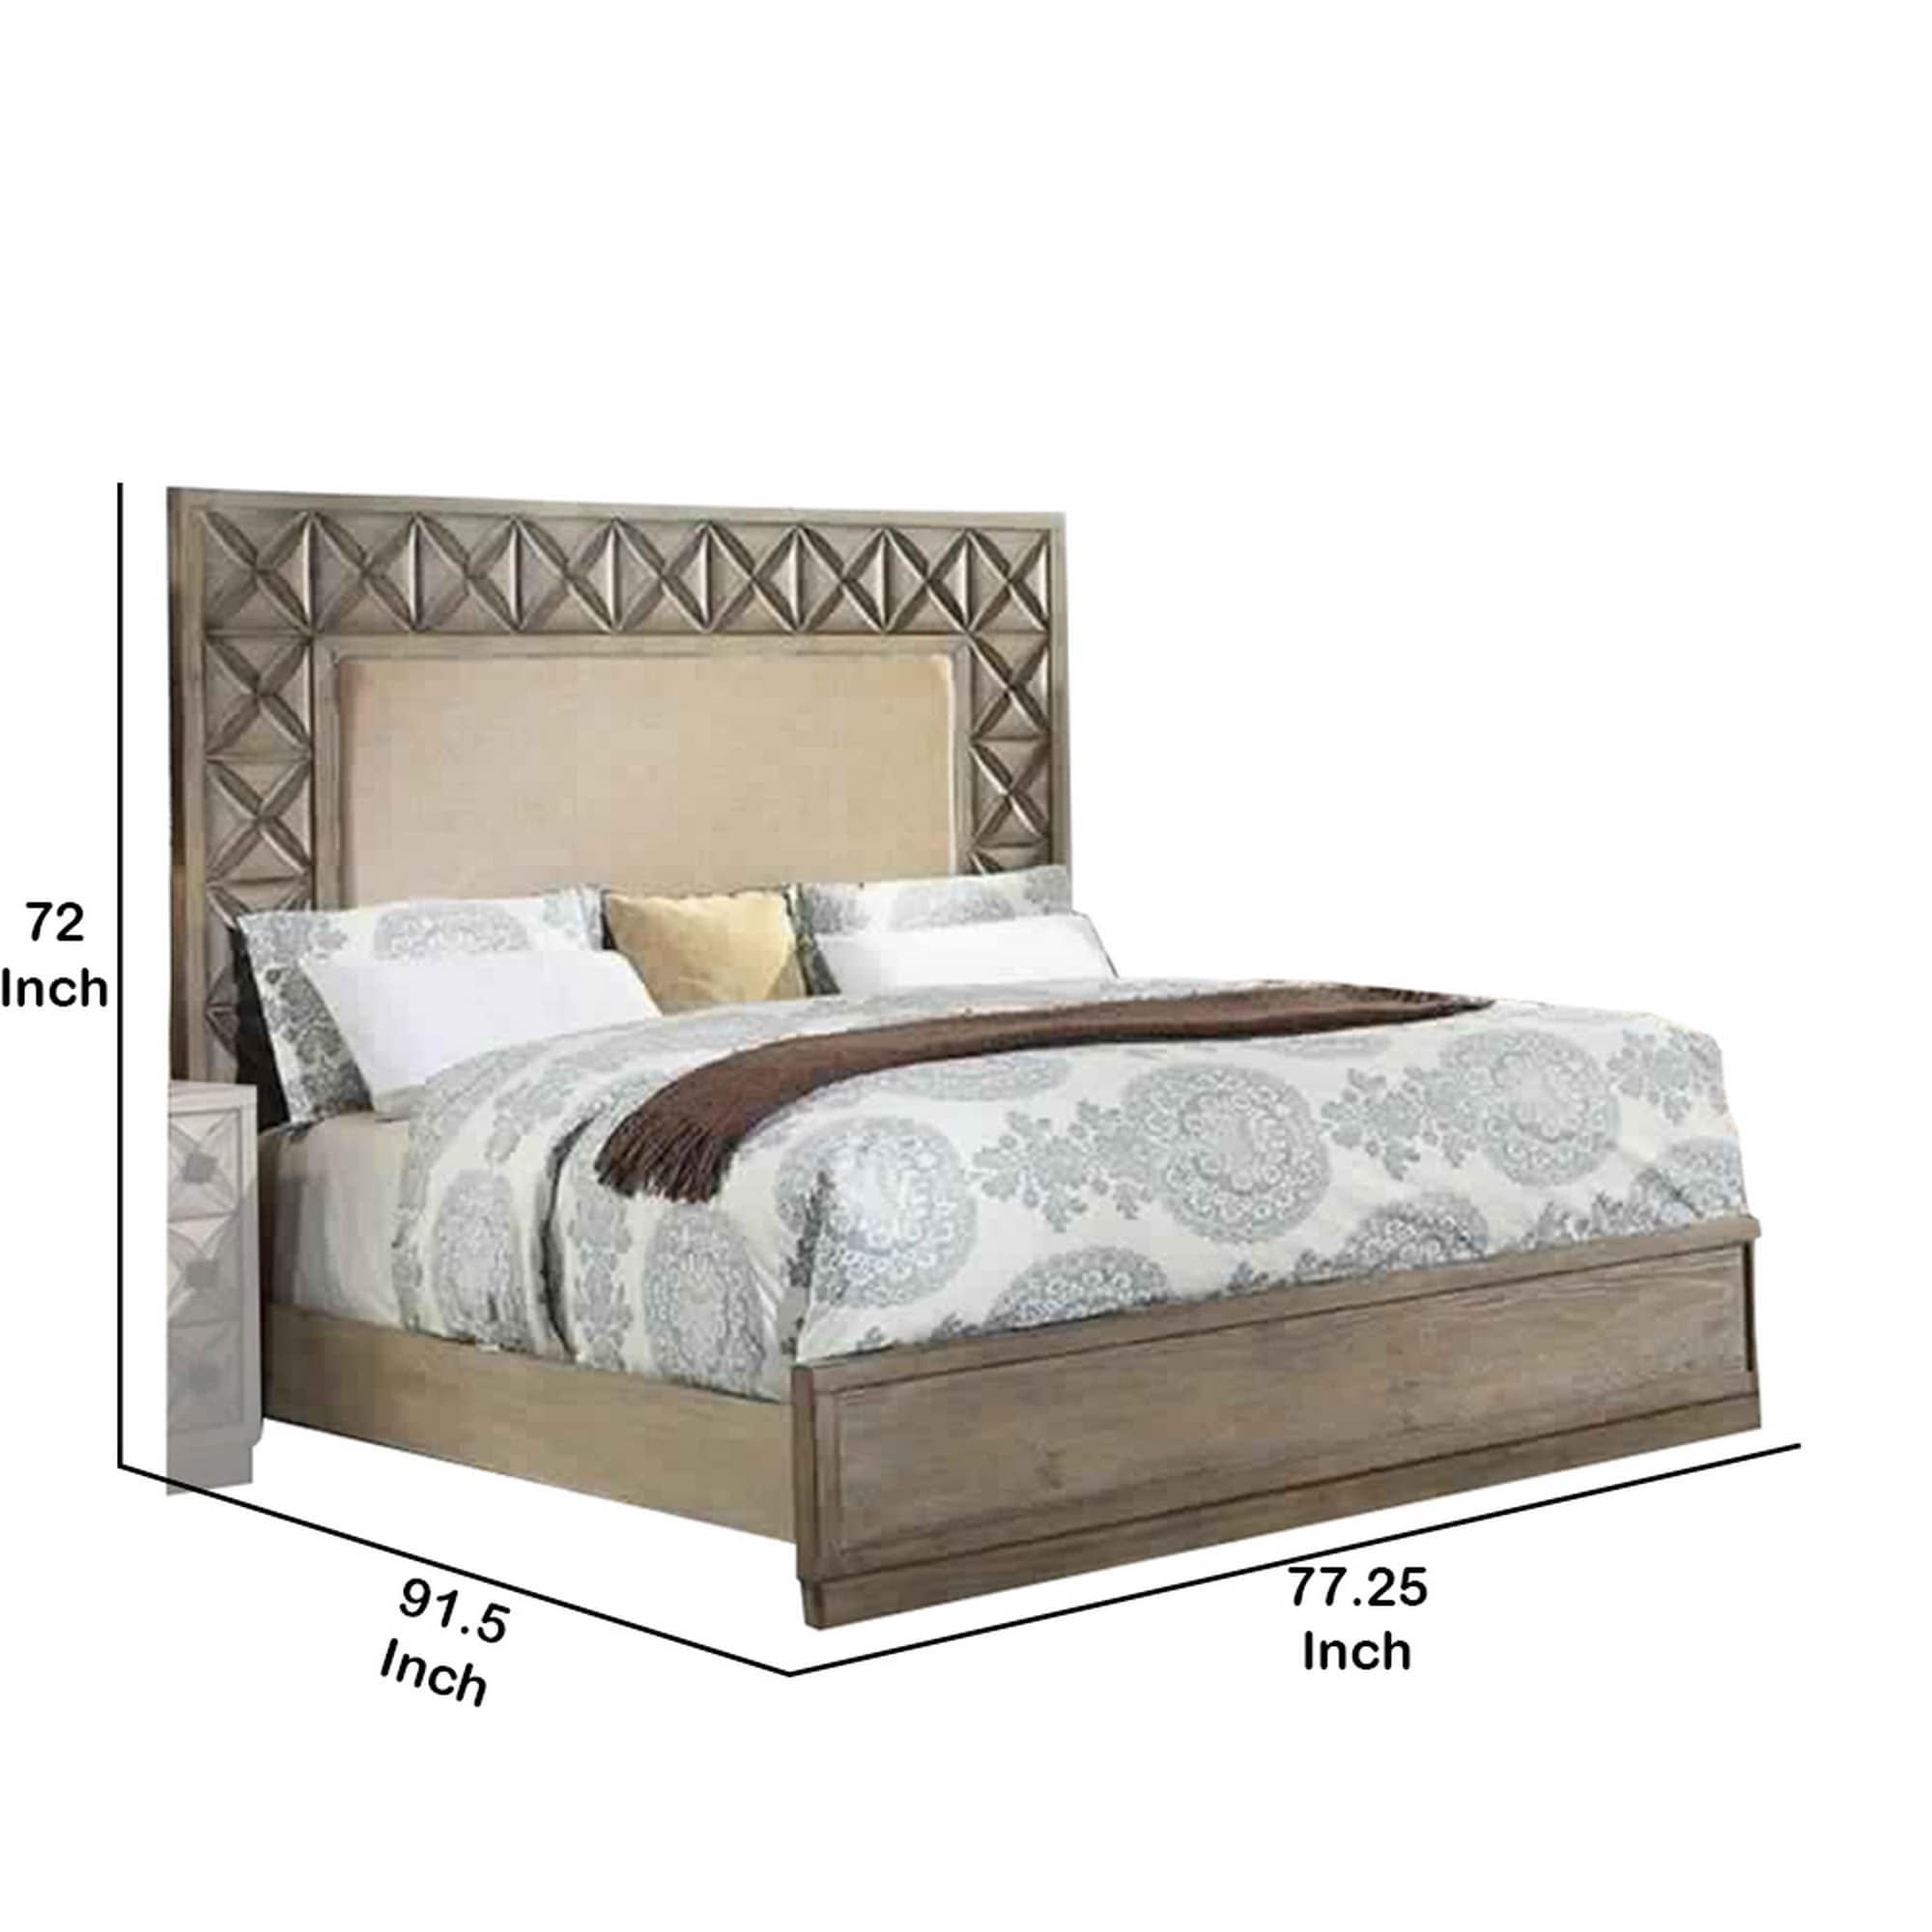 Shop Wooden California King Size Bed With Upholstered Headboard Beige And Brown Overstock 31304720